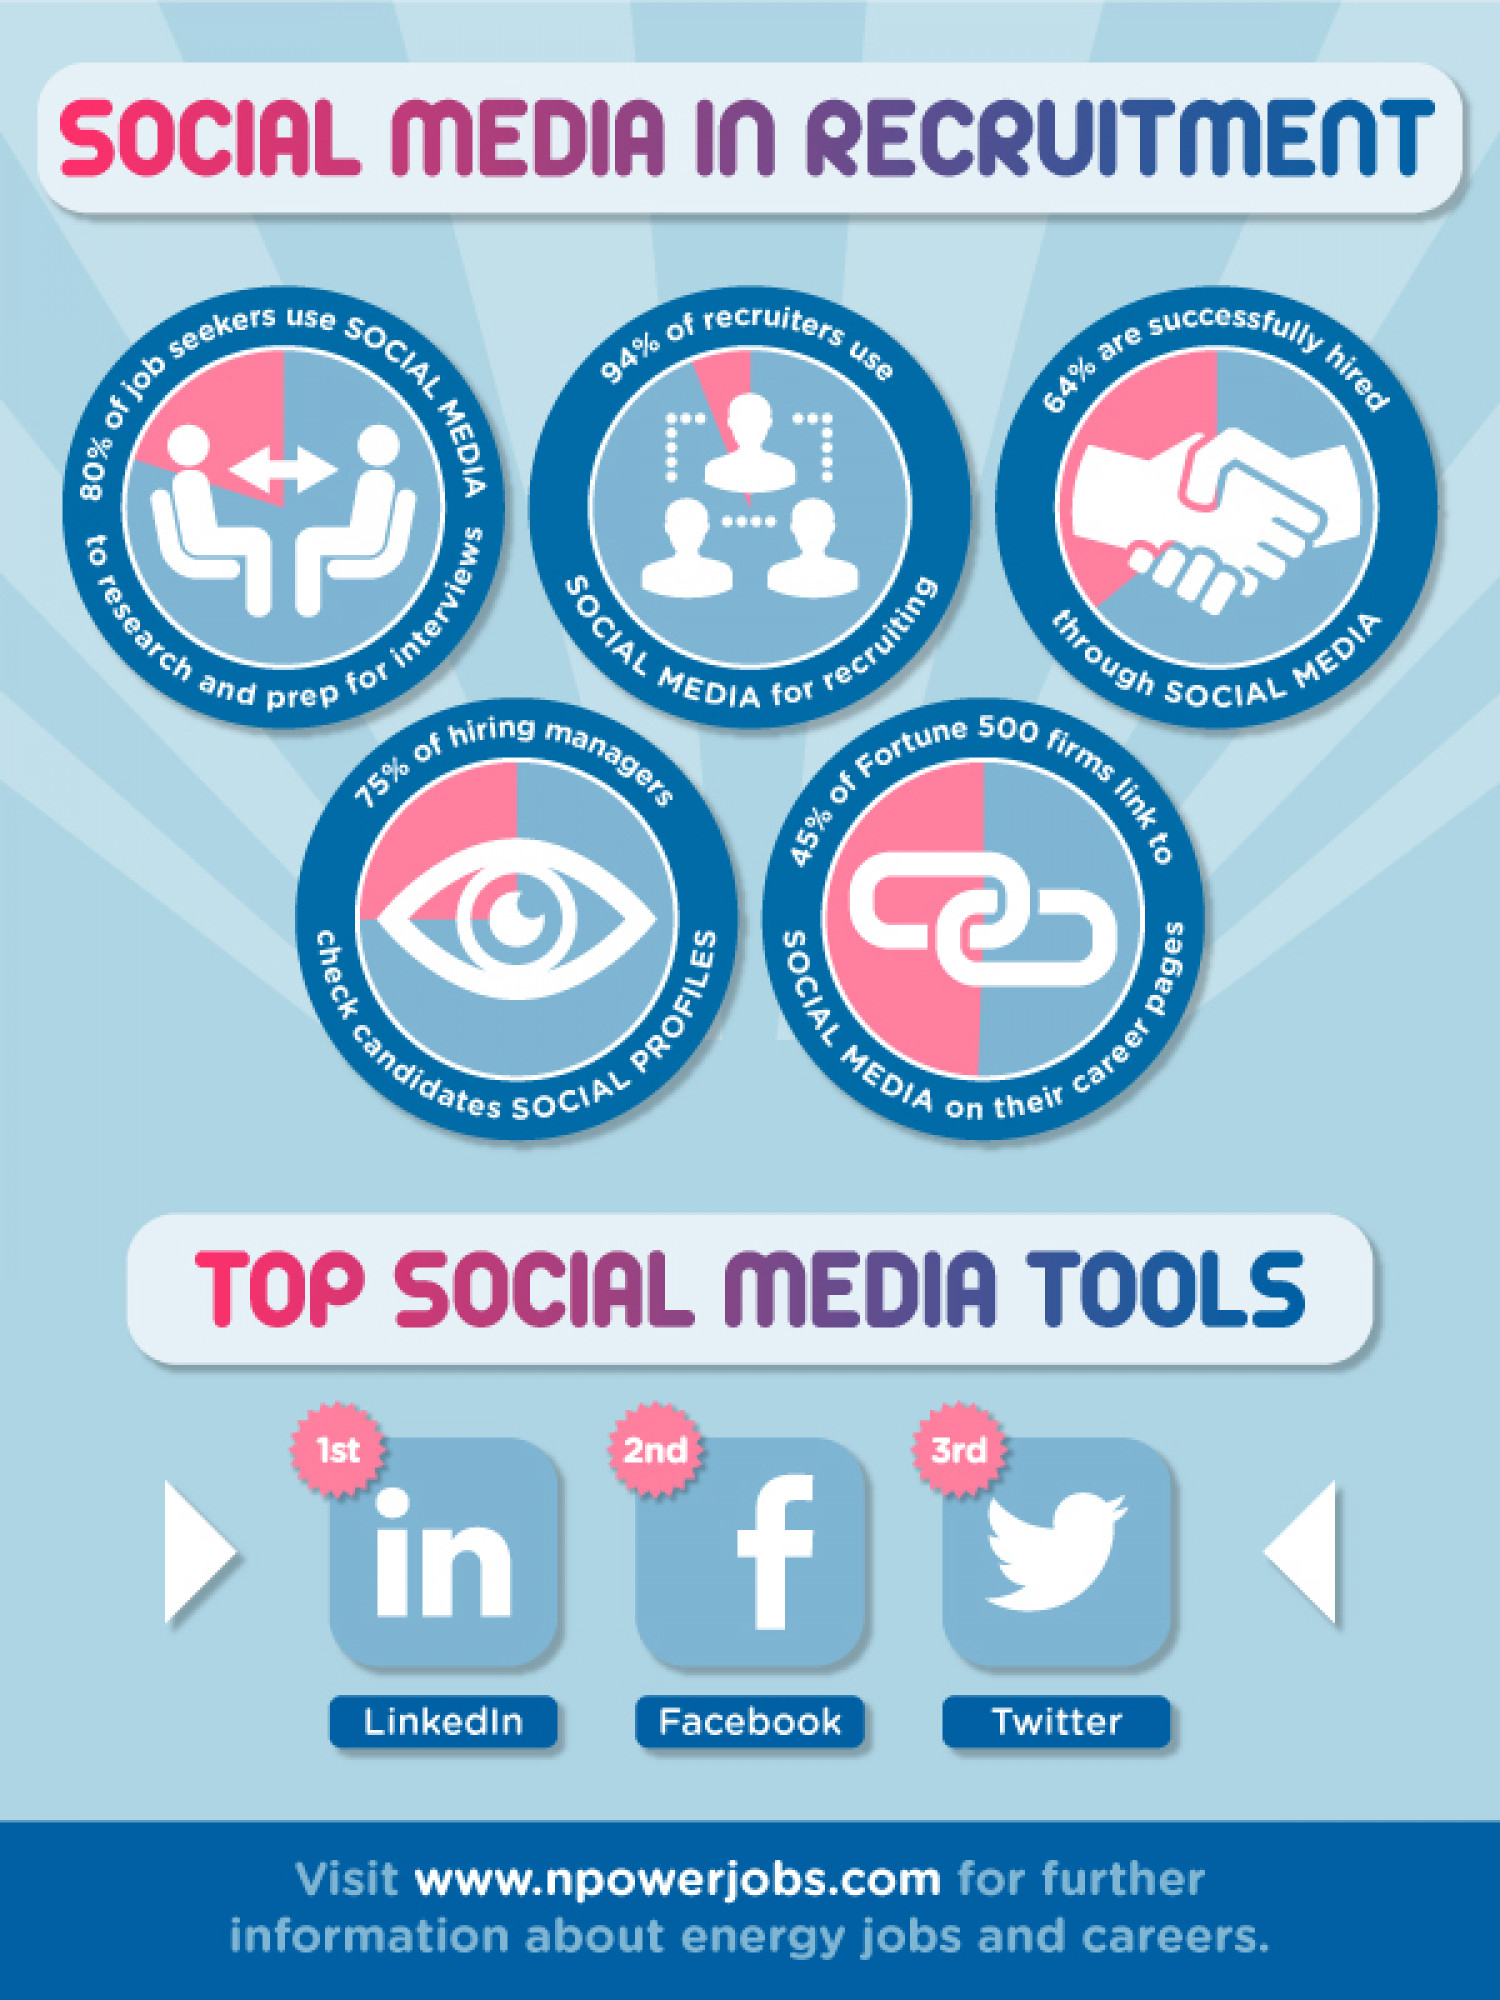 Social Media in Recruitment Infographic